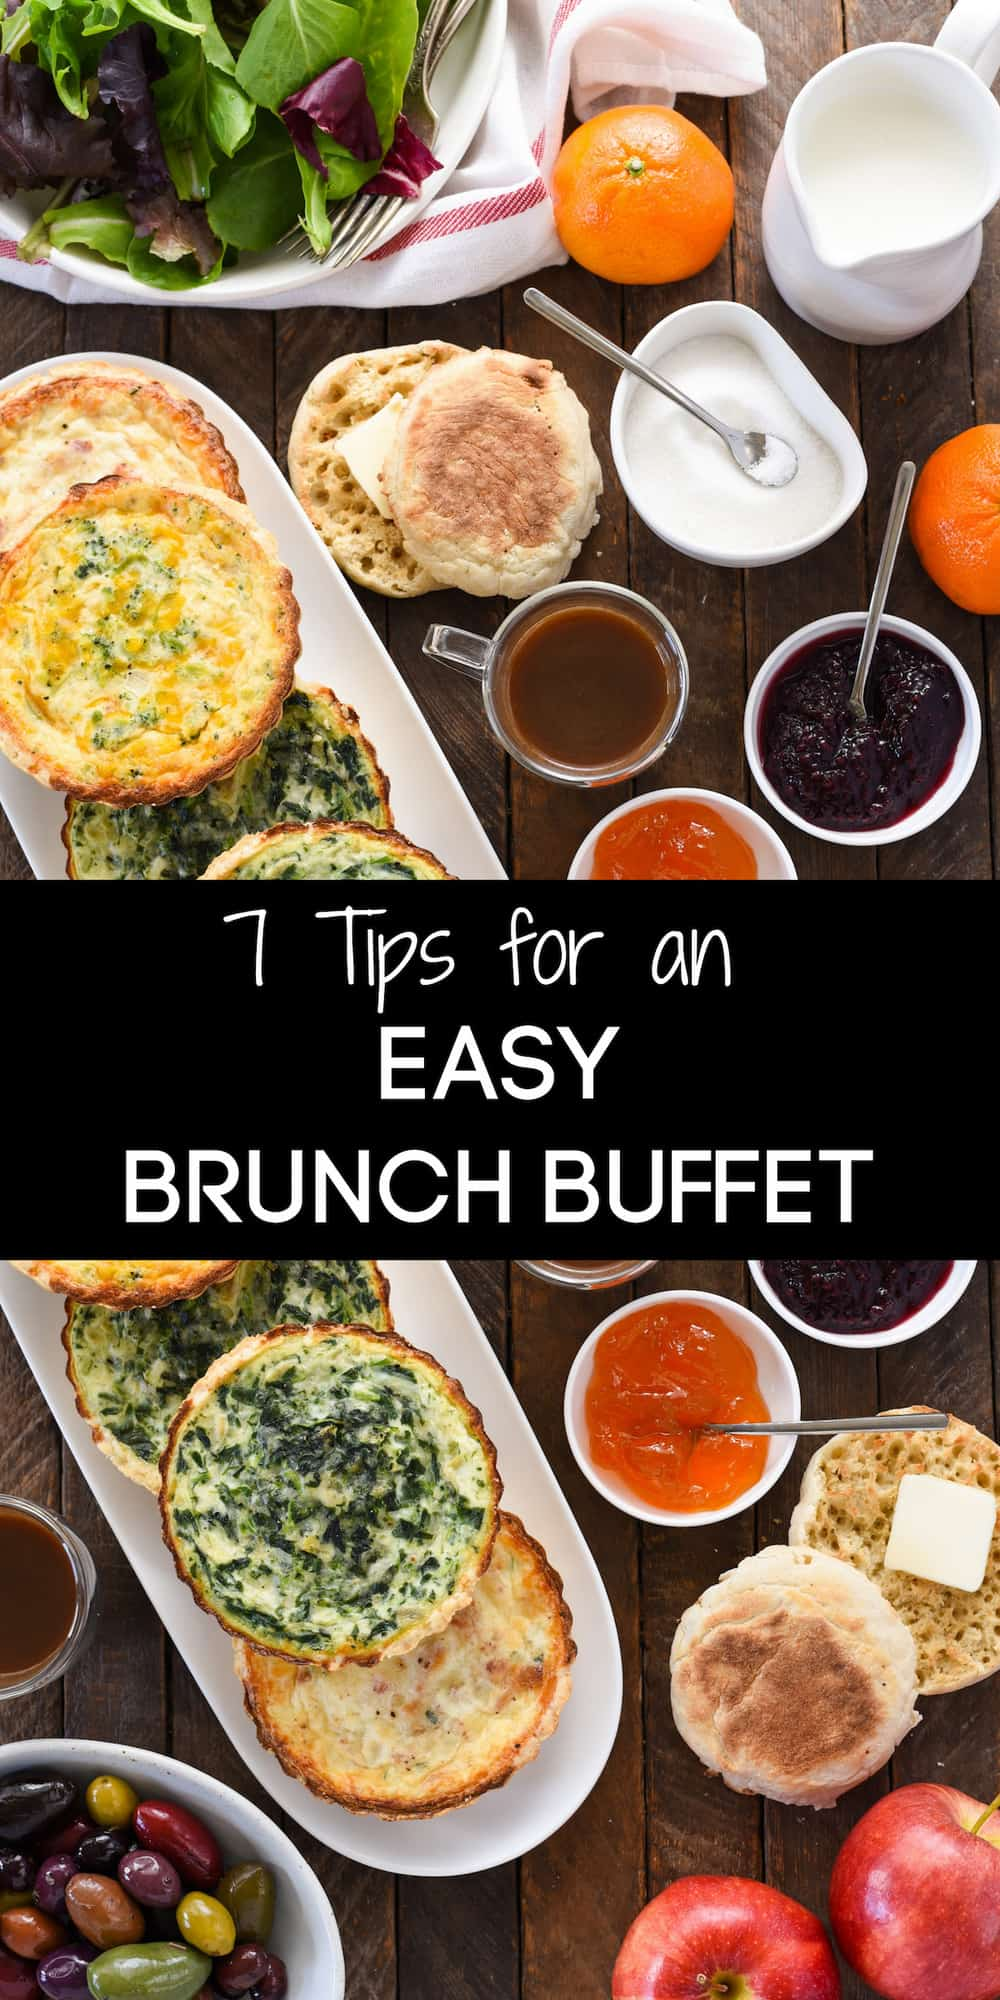 Images of a breakfast foods with overlay: 7 Tips for an EASY BRUNCH BUFFET